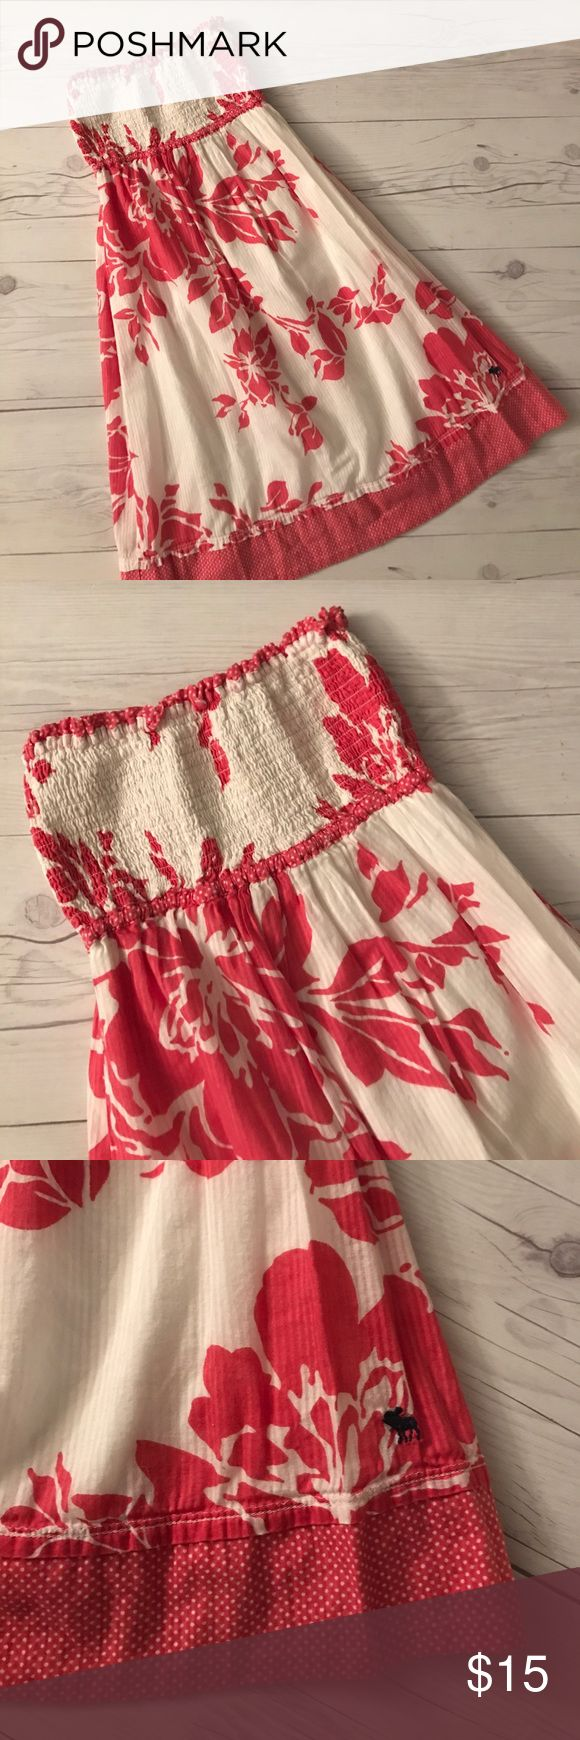 Abercrombie &a Fitch dress Cream and coral color cotton dress by Abercrombie & Fitch. Fully lined soft and flowy. Like new condition size XL. I have lots of children's clothing check out my closet. ALL ITEMS ARE BUY 3 GET 1 FREE! Abercrombie & Fitch Dresses